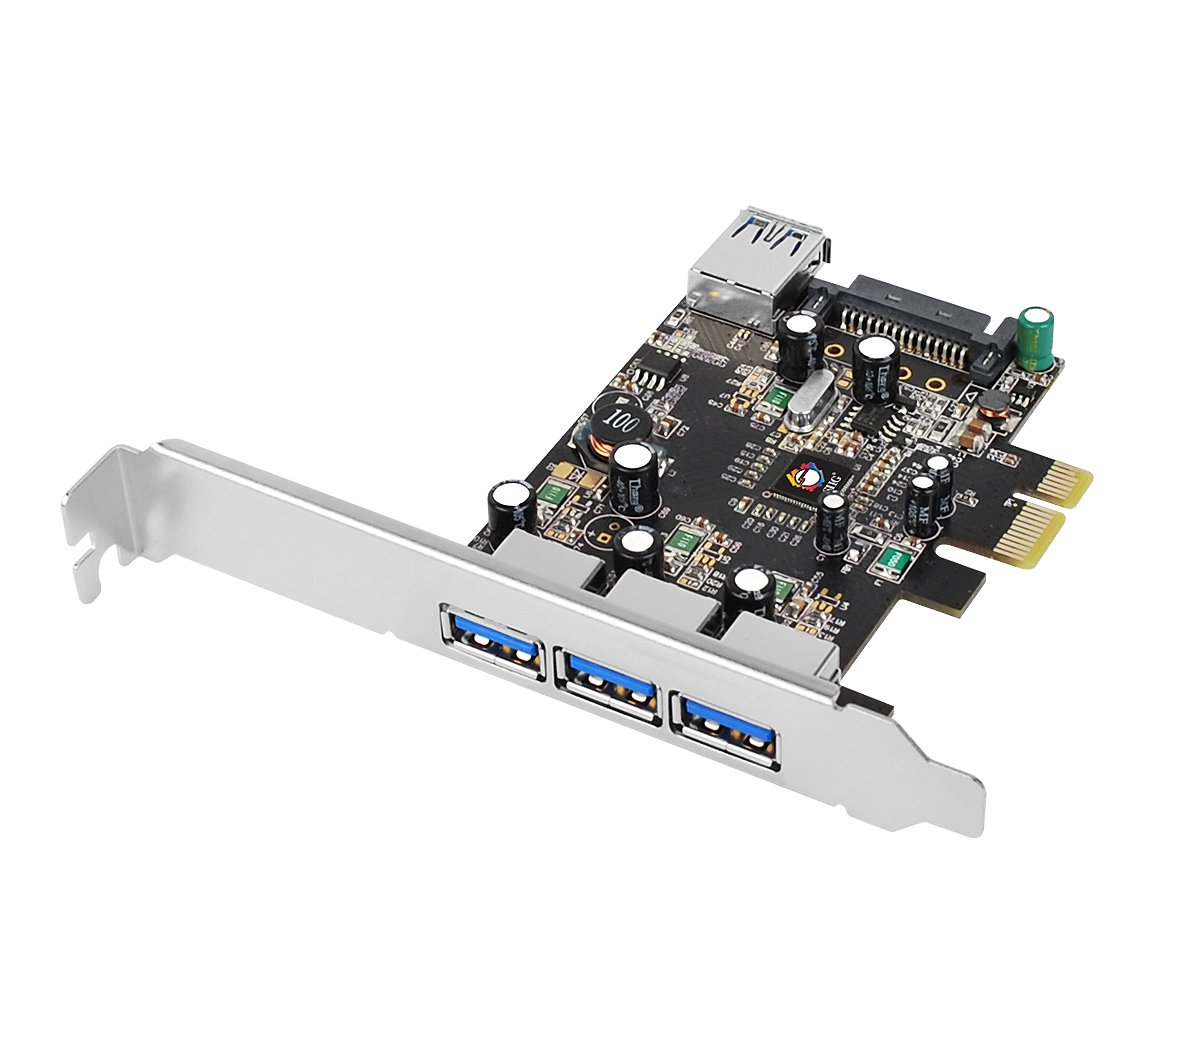 SIIG Legacy & Beyond JU-P40611-S2 Superspeed DP 4 Ports PCI-e to USB 3.0 High Performance Adapter Card With 15Pin SATA Power, 3x9-pin External and 1x9-pin Internal Connector by SIIG